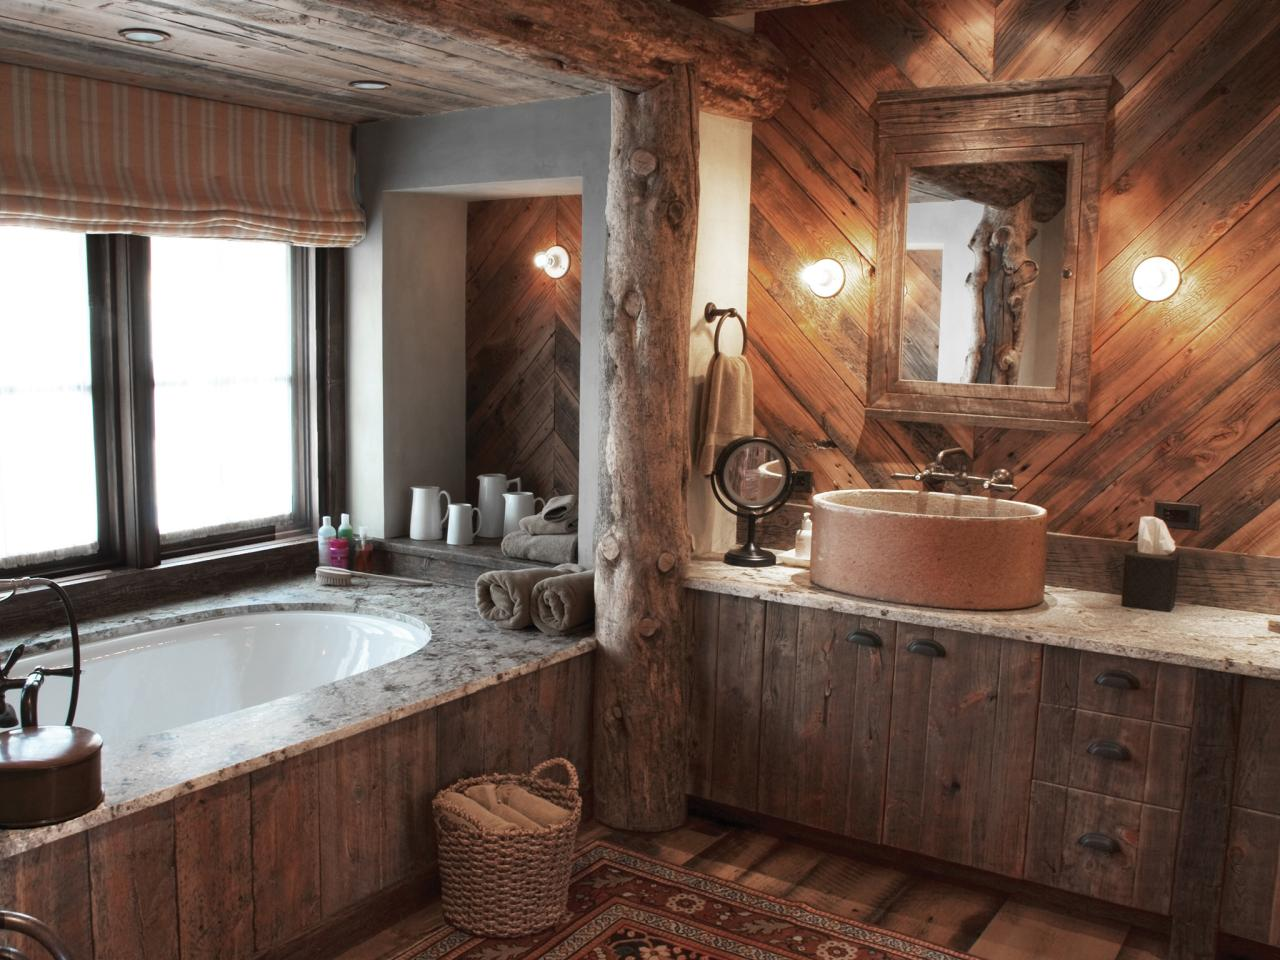 Http Photos Hgtv Com Rooms Bathroom Rustic